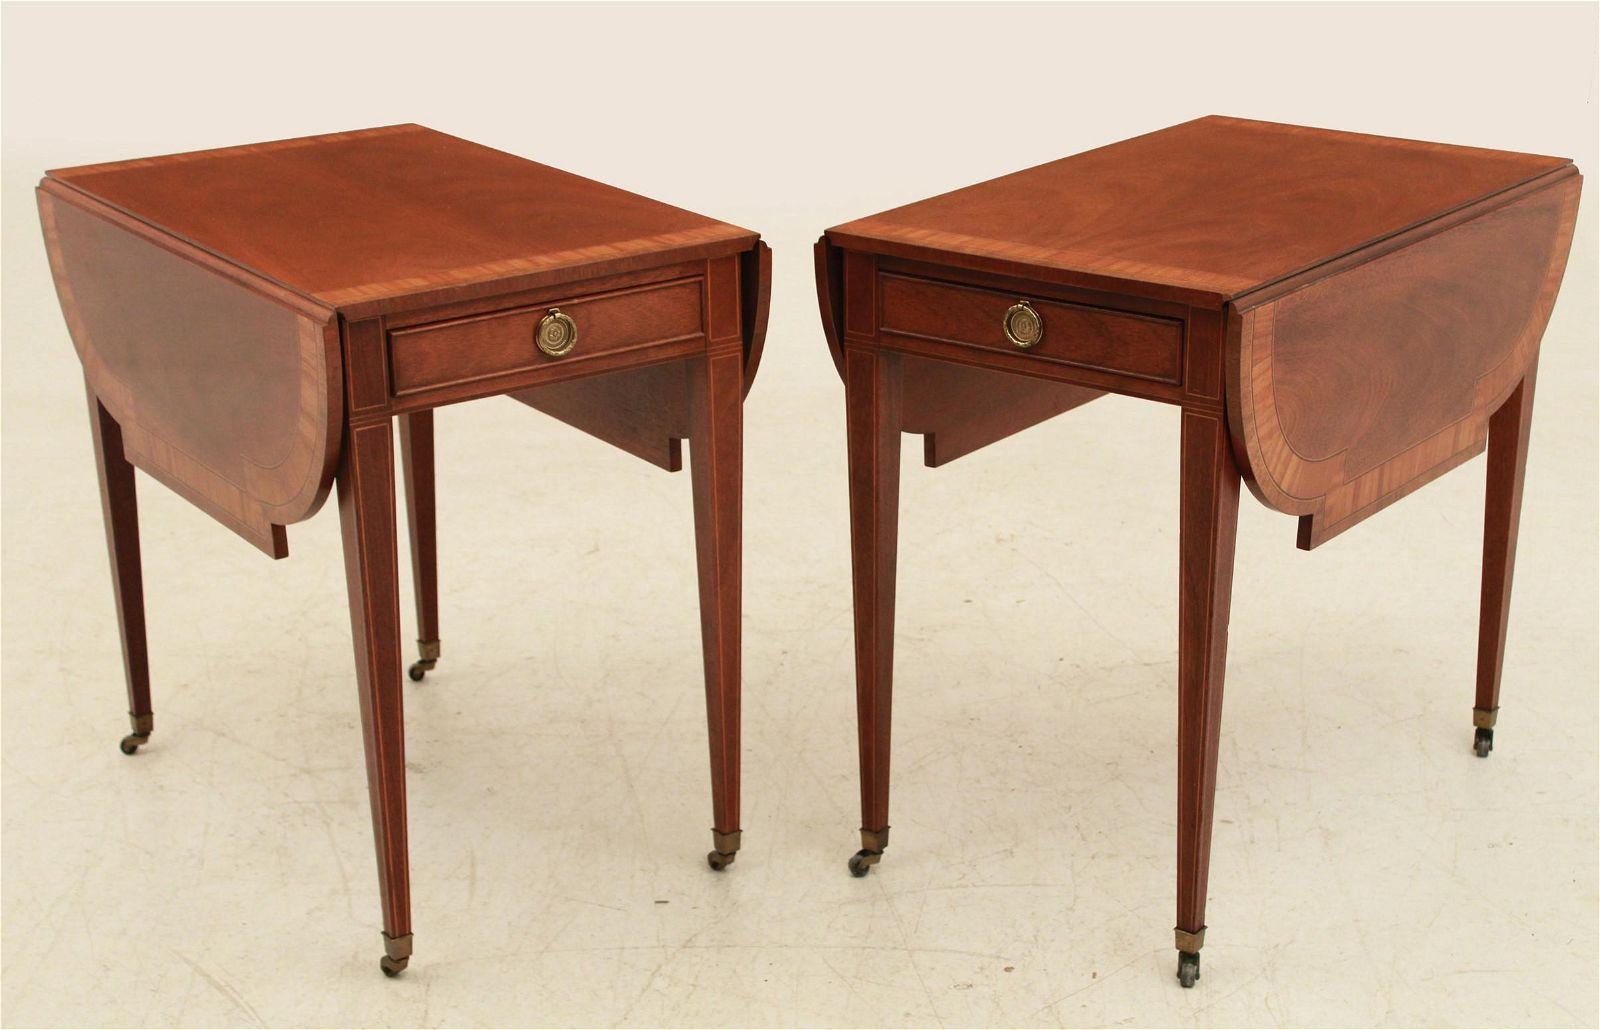 PR. OF SHERATON STYLE SATINWOOD BANDED PEMBROKE TABLES